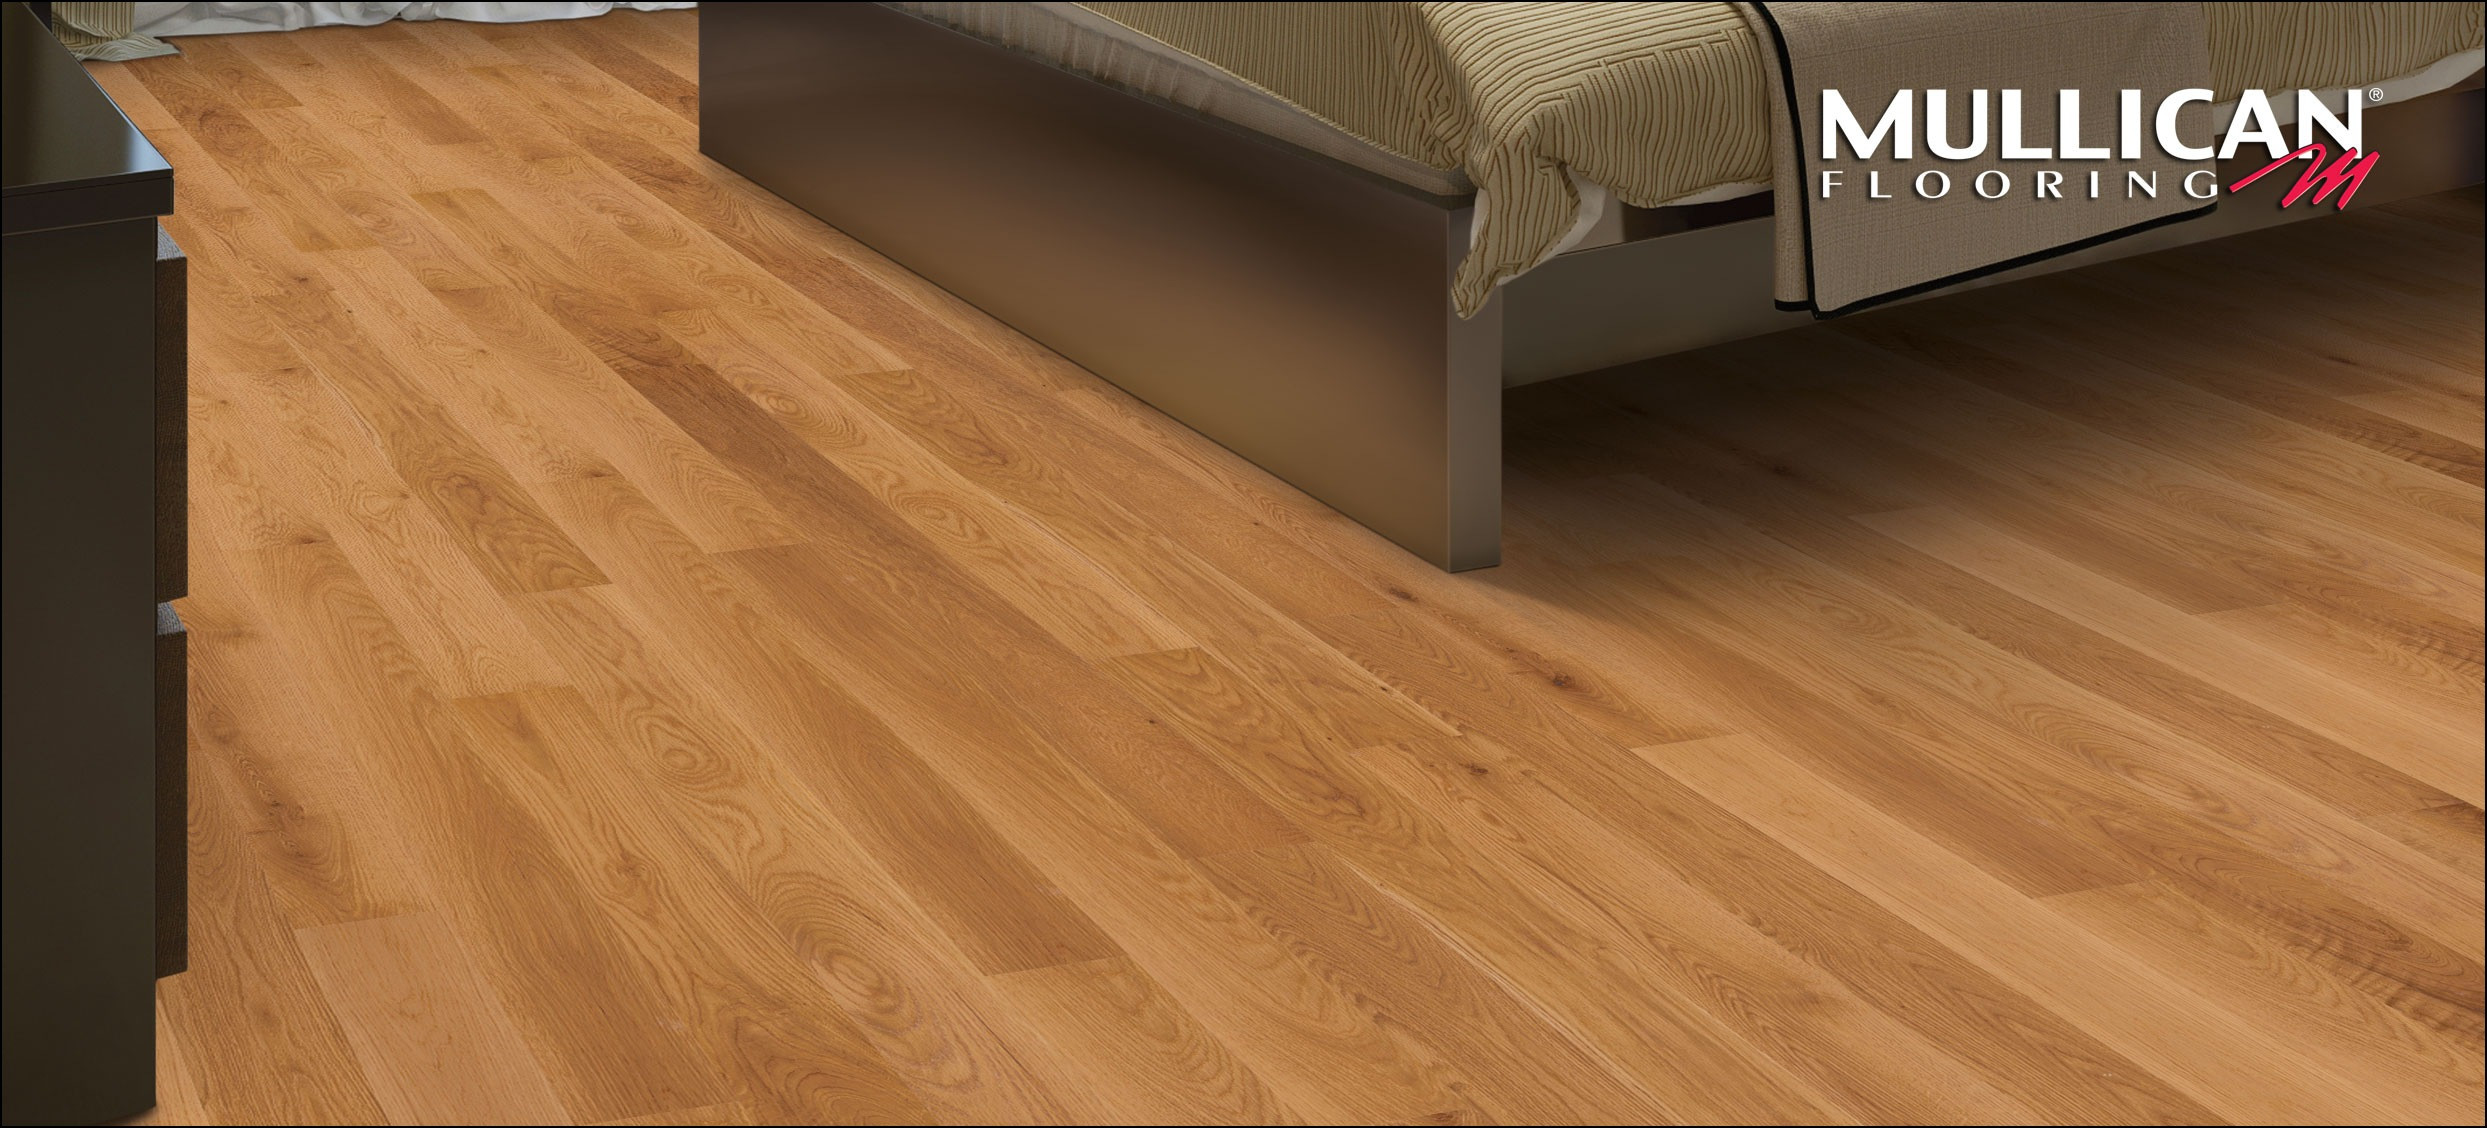 how to install hand scraped hardwood floors of hardwood flooring suppliers france flooring ideas inside hardwood flooring installation san diego collection mullican flooring home of hardwood flooring installation san diego